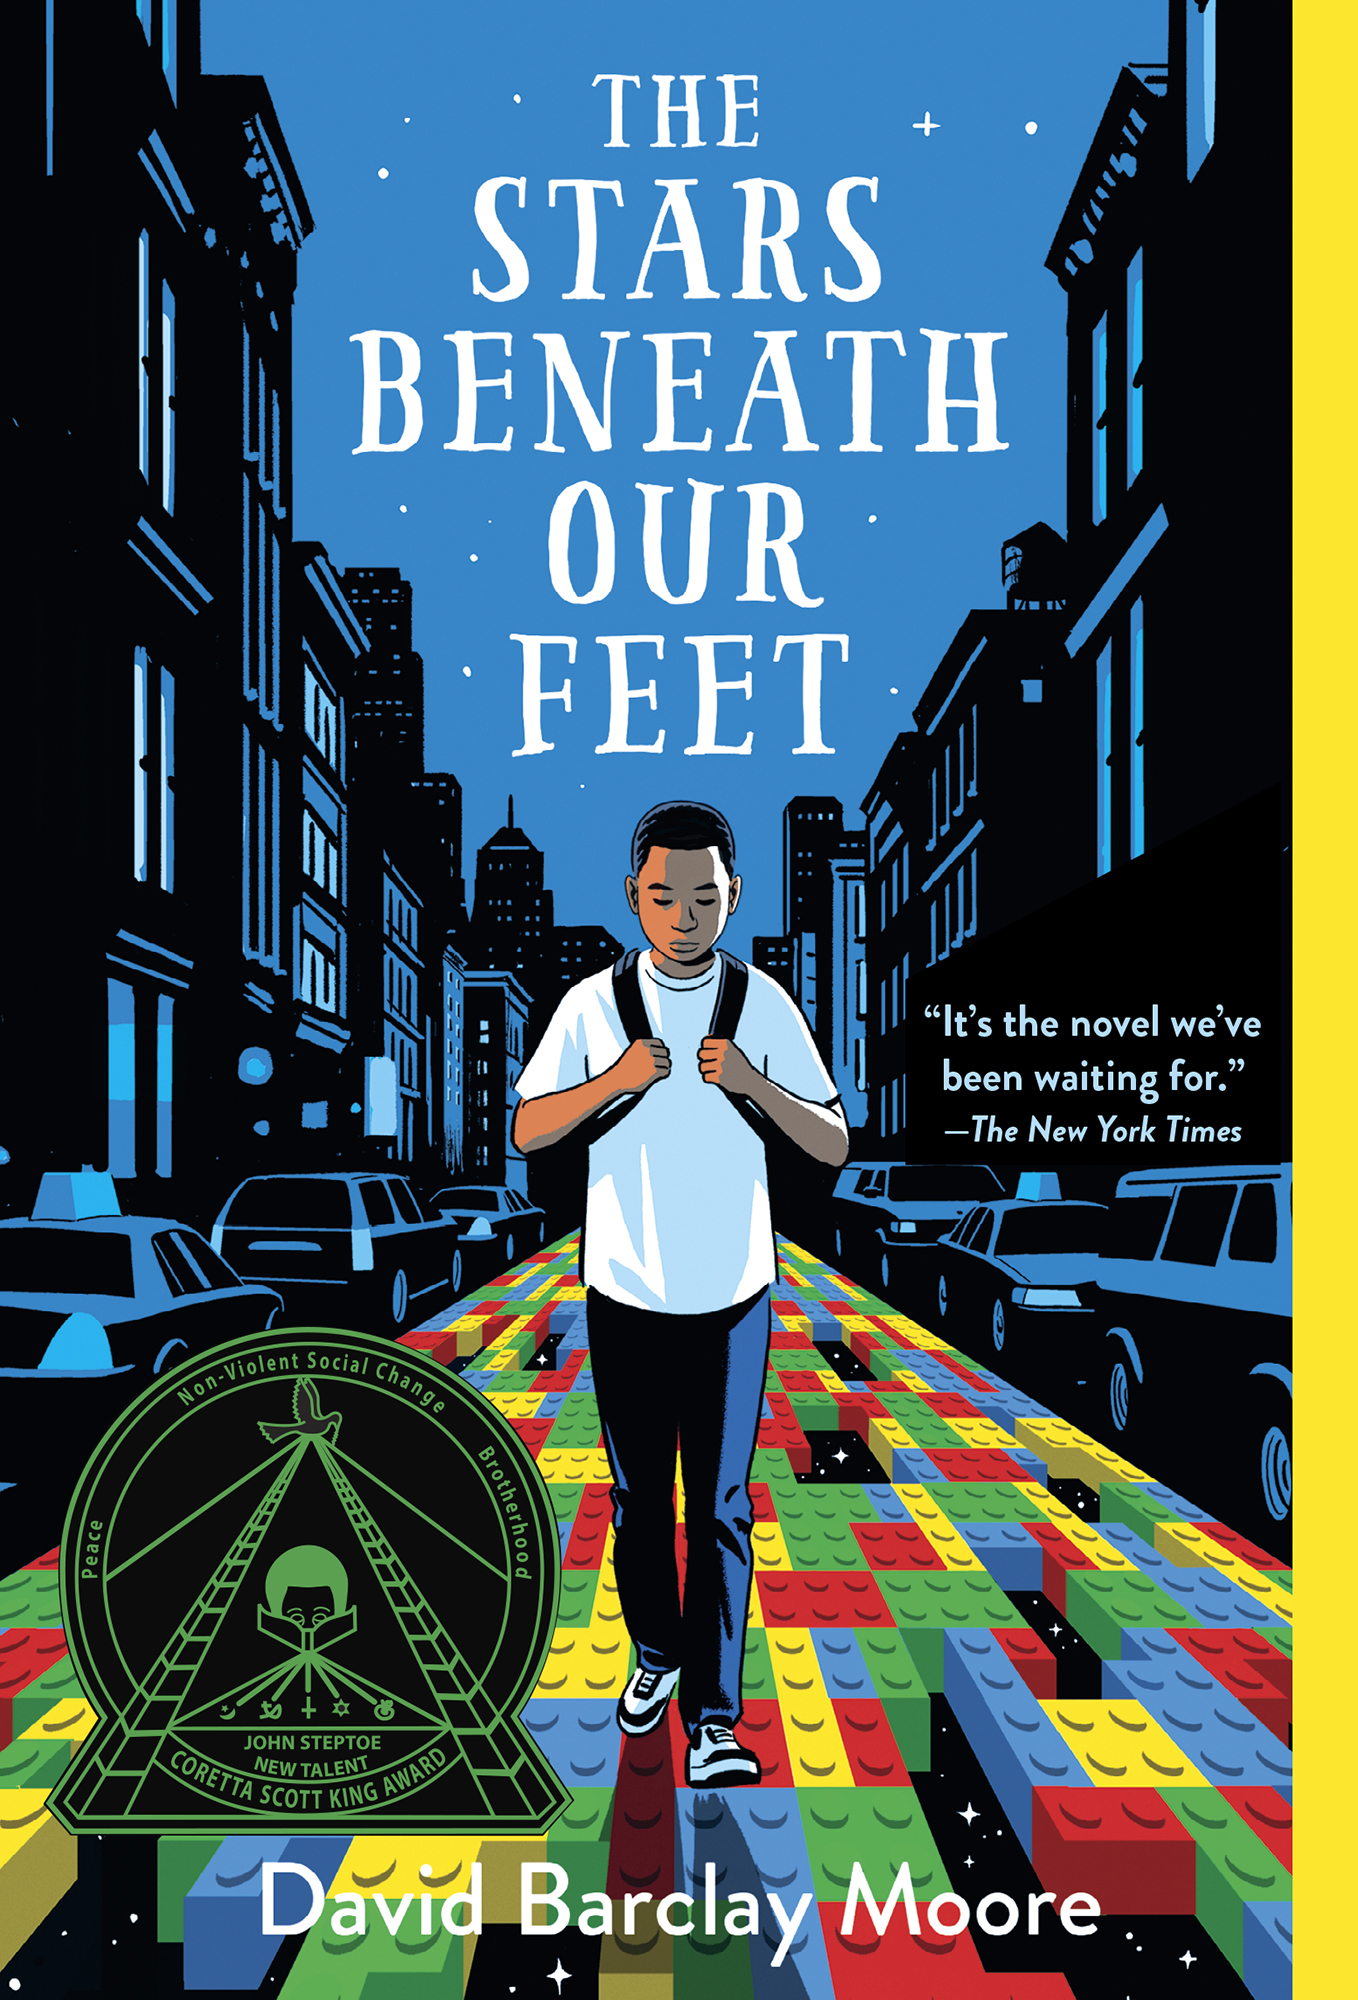 The Stars Beneath Our Feet (David Barclay Moore; Knopf Books for Young Readers)